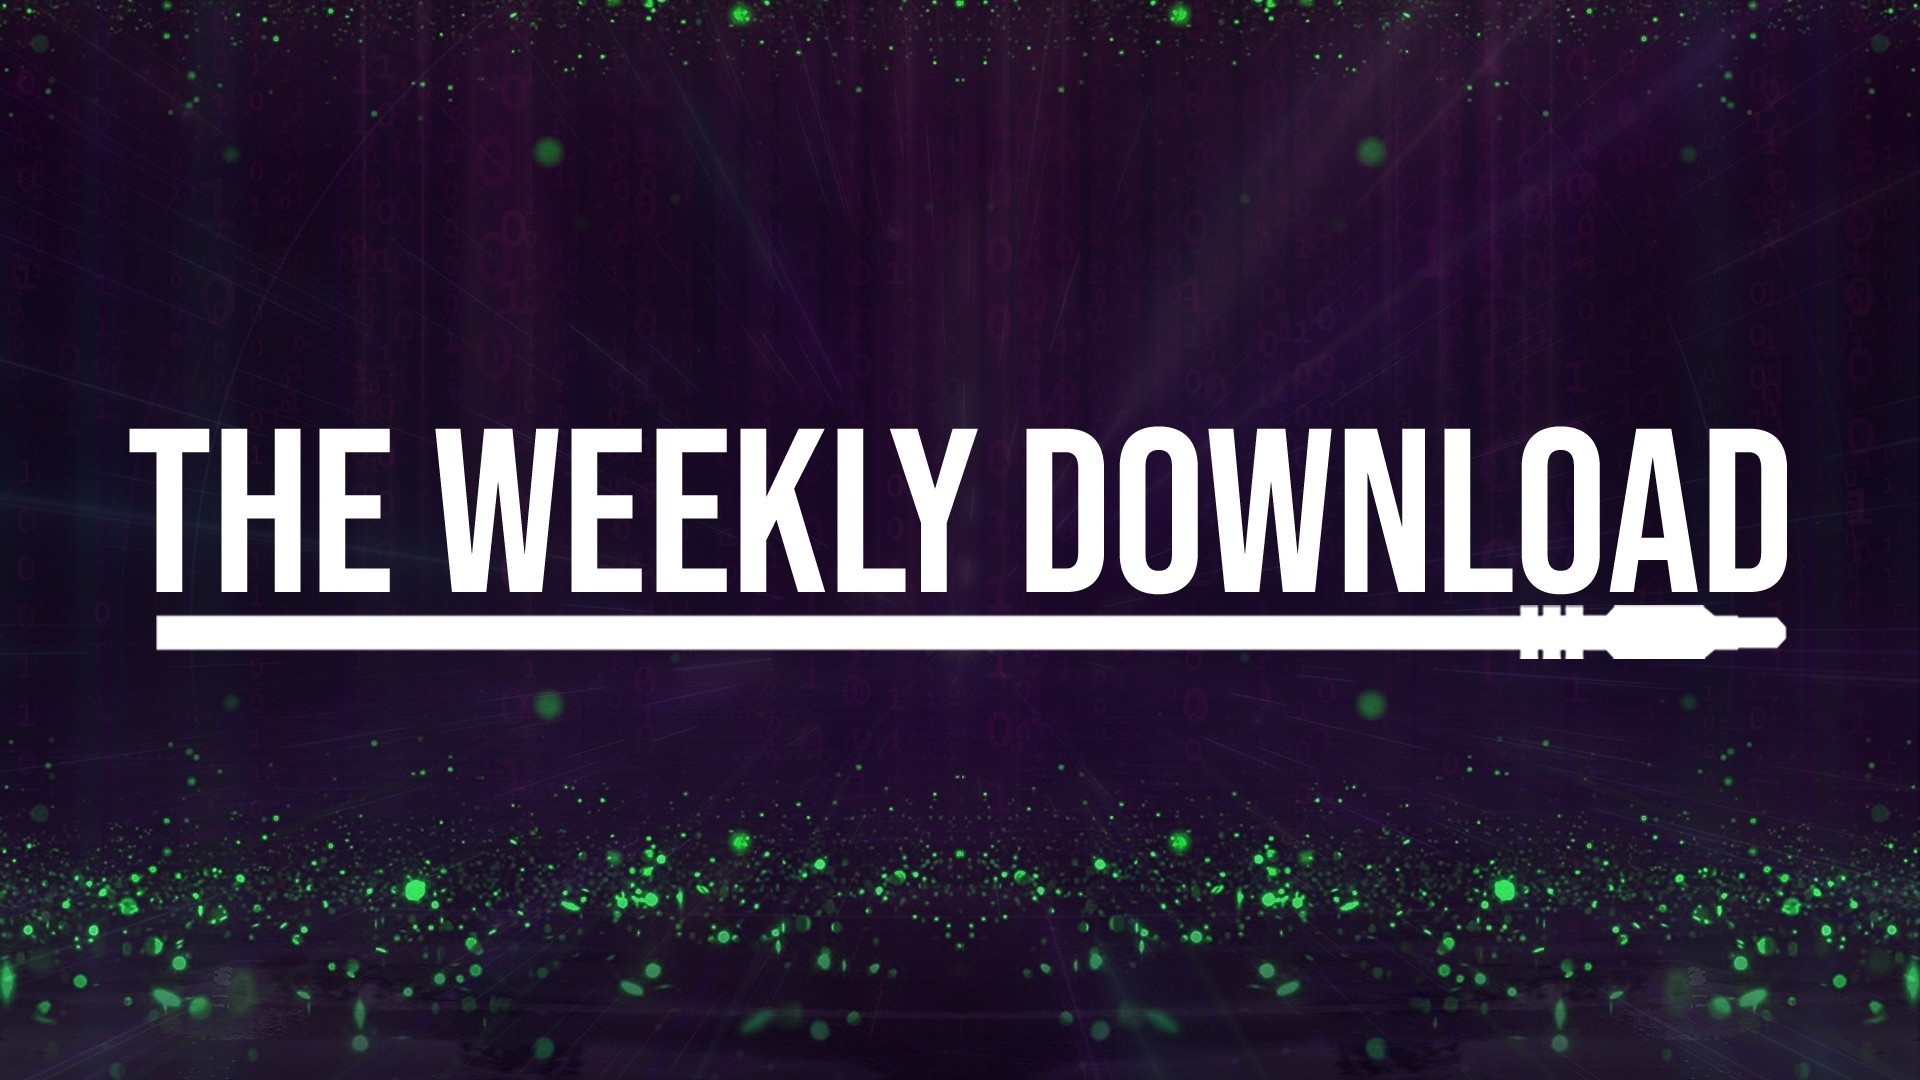 Join The Weekly Download for EDM Production and Ableton Sound Design Tutorials.